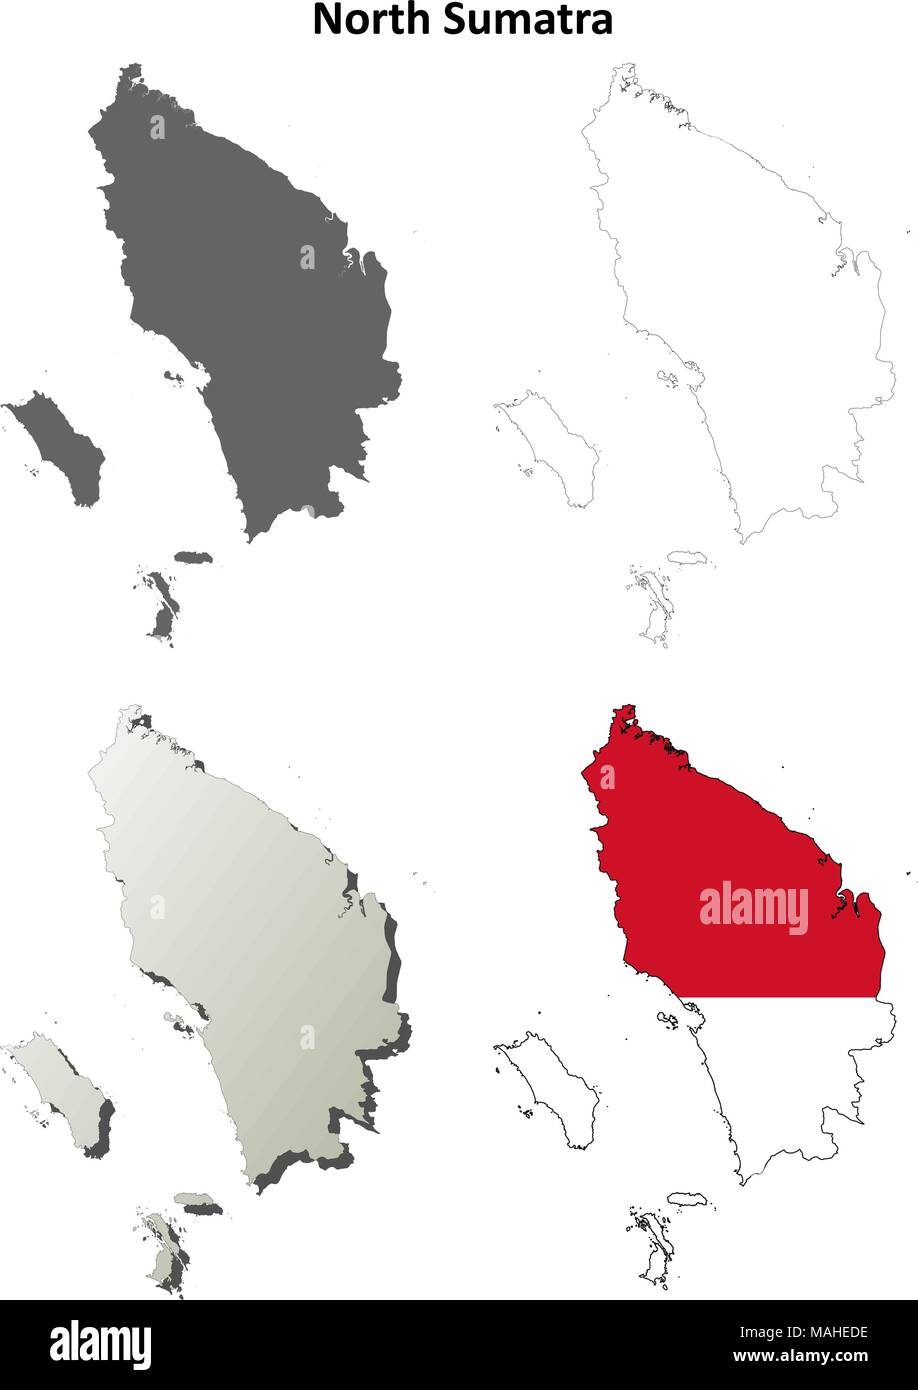 North Sumatra blank outline map set - Stock Vector